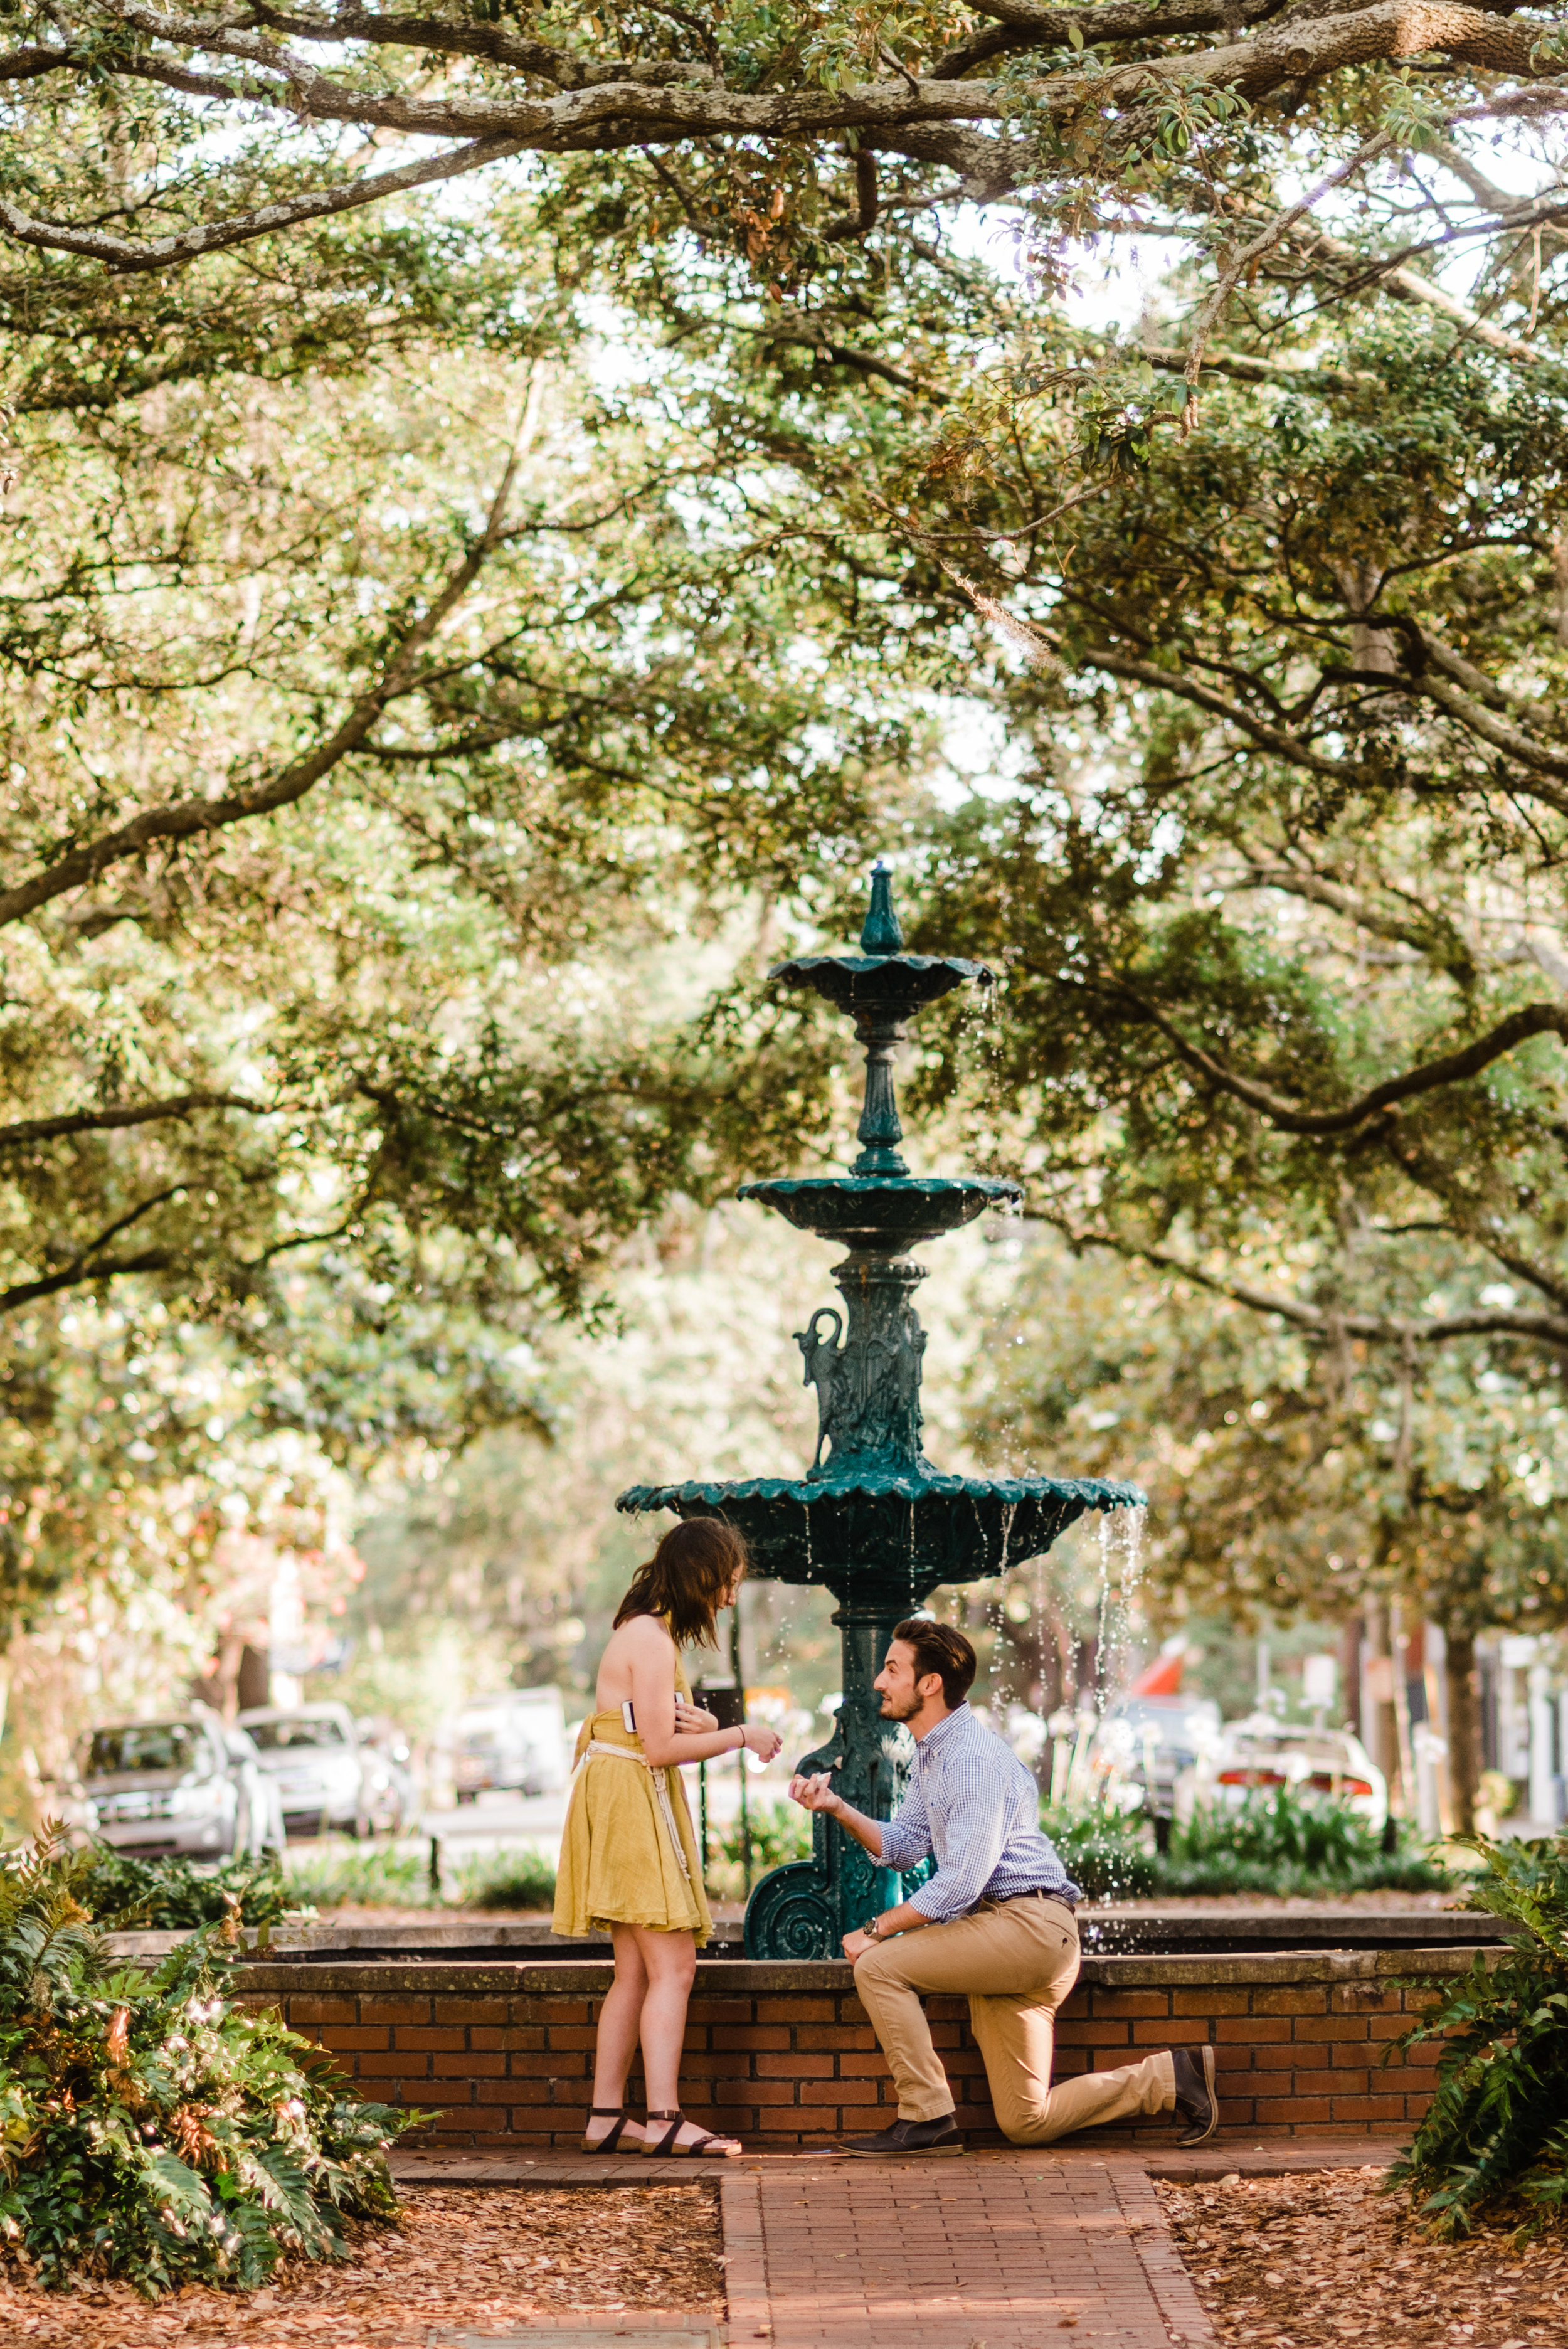 SUPRISE PROPOSALS & COUPLES STARTING AT $350 -